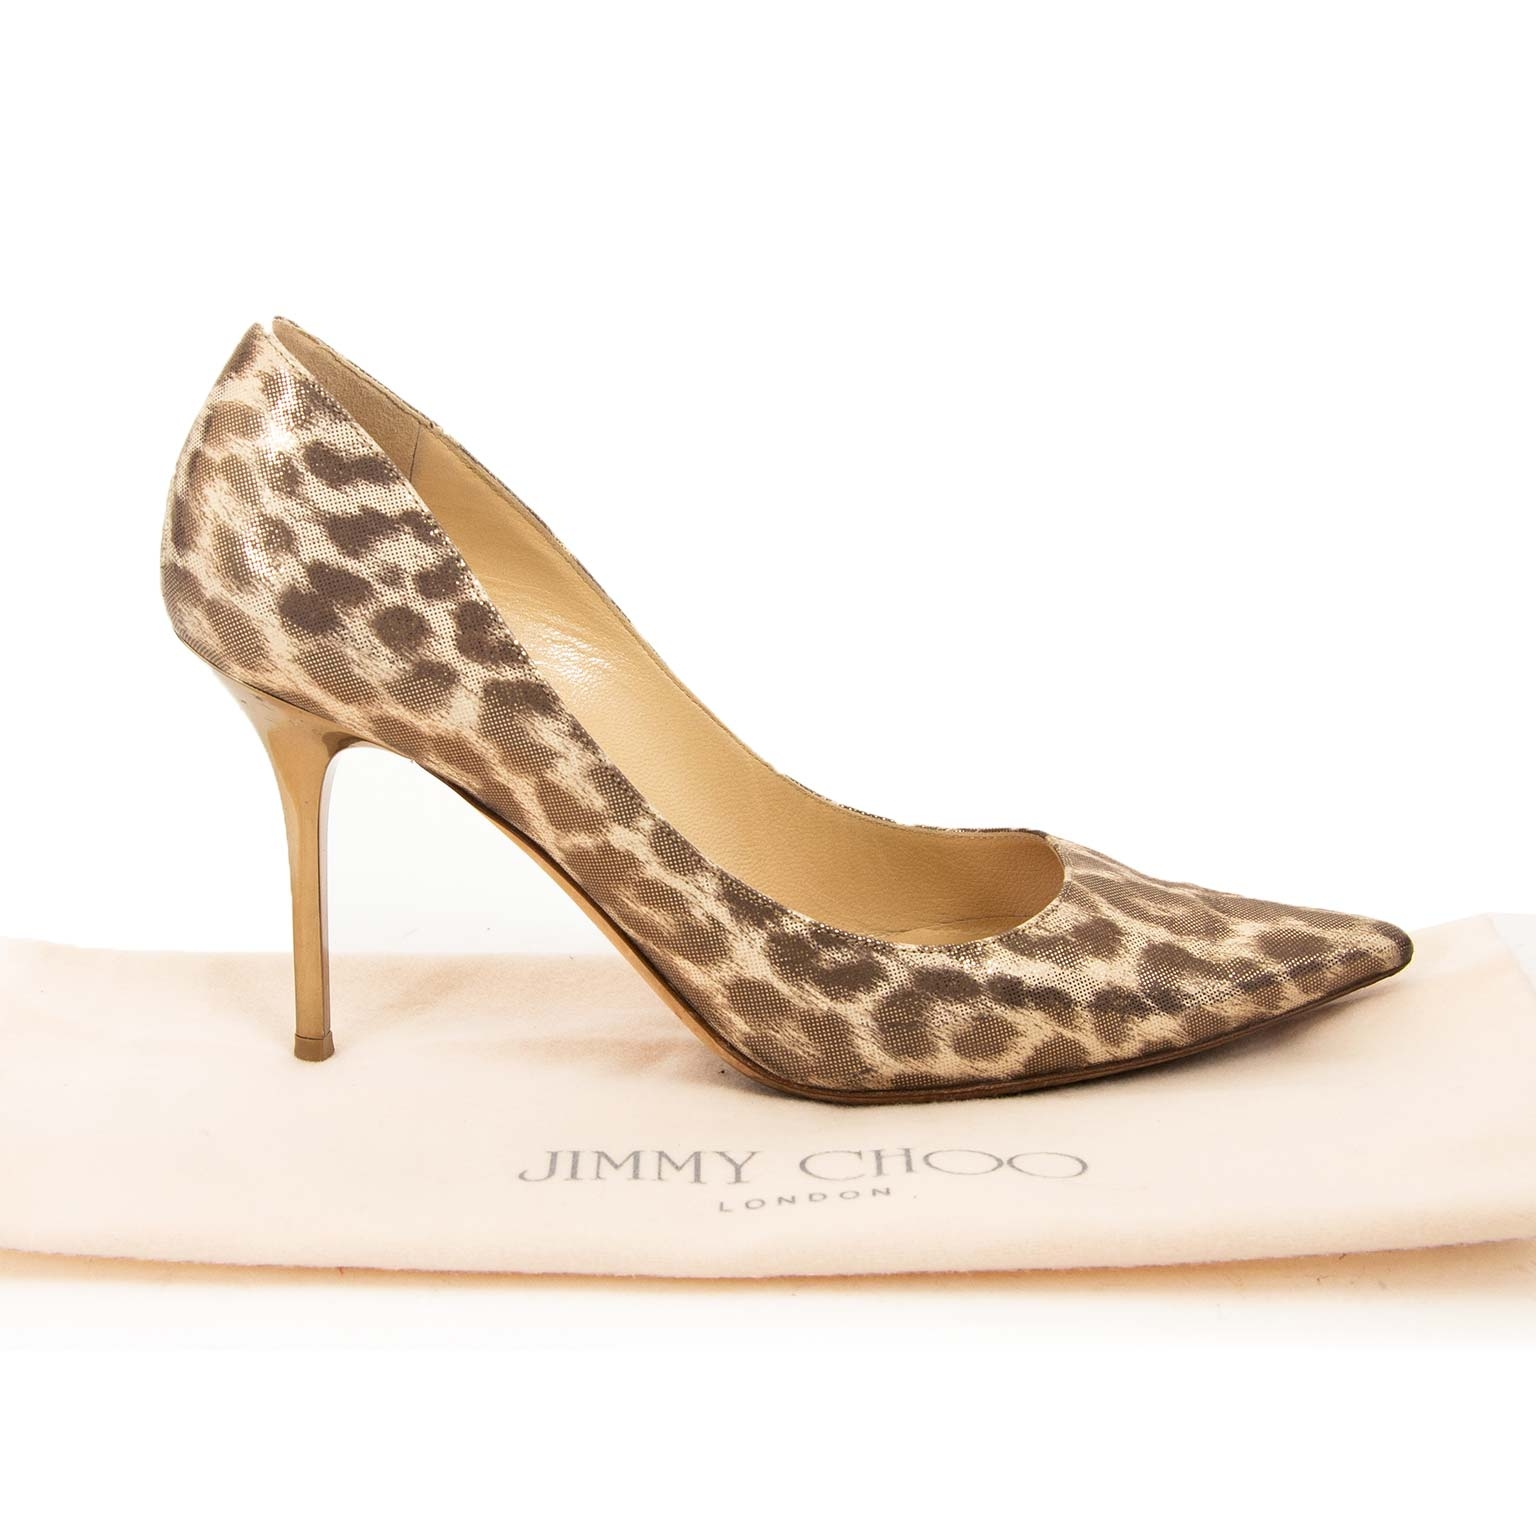 jimmy choo leopard pumps now for sale at labellov vintage fashion webshop belgium